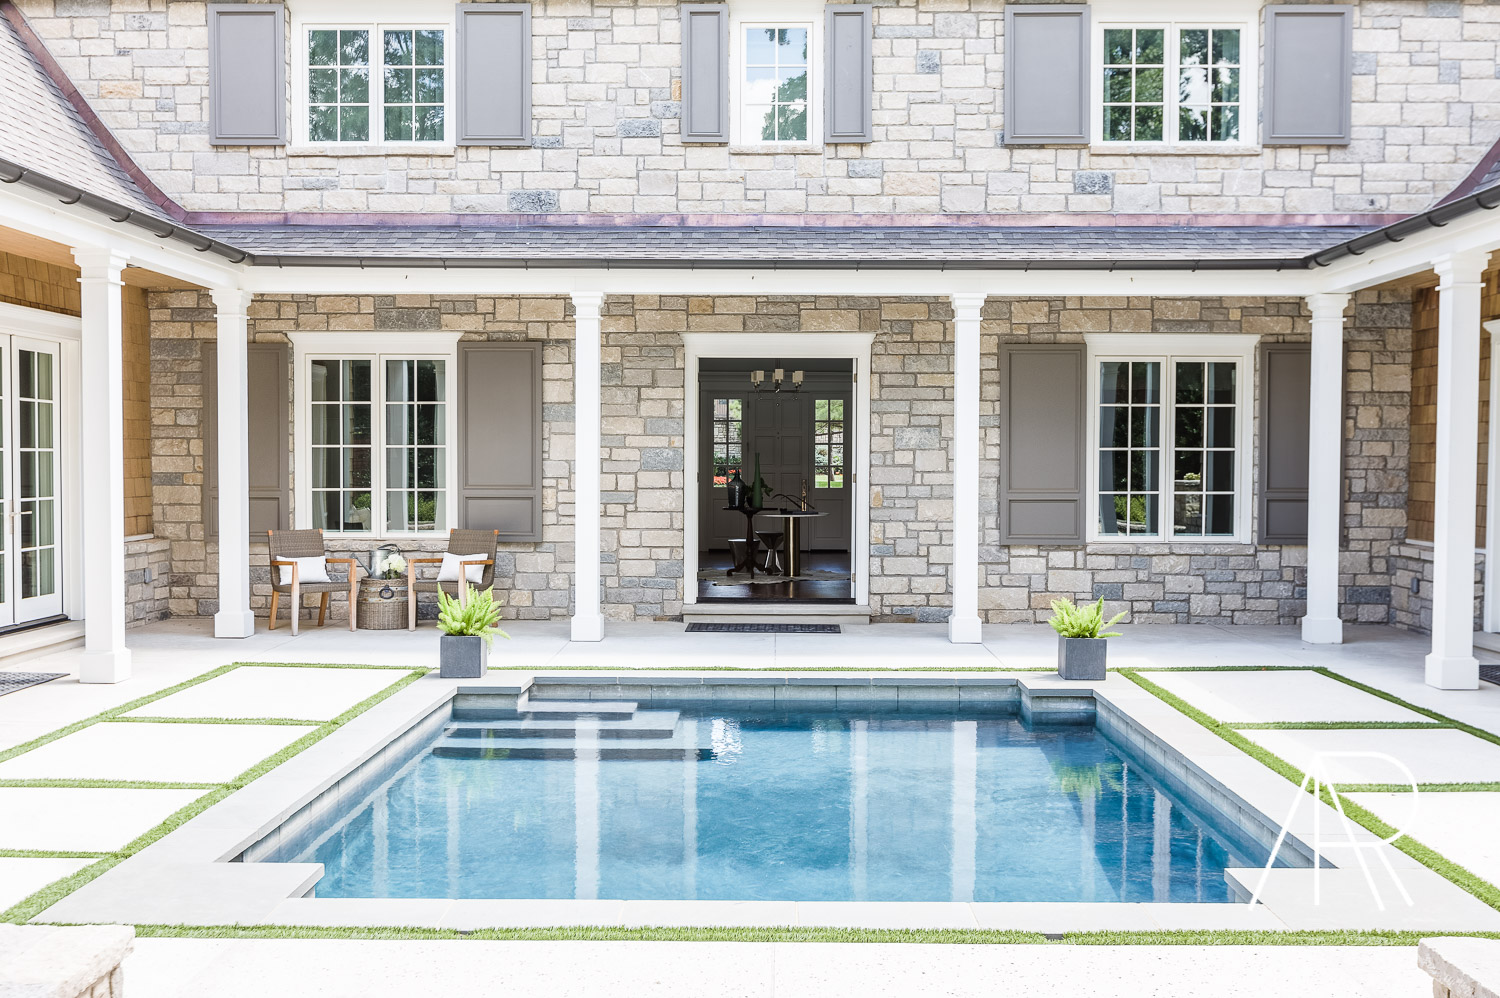 ©AlyssaRosenheck2015 The Most Charming Home in Tulsa Designed By Austin Bean featured in Elle Decor